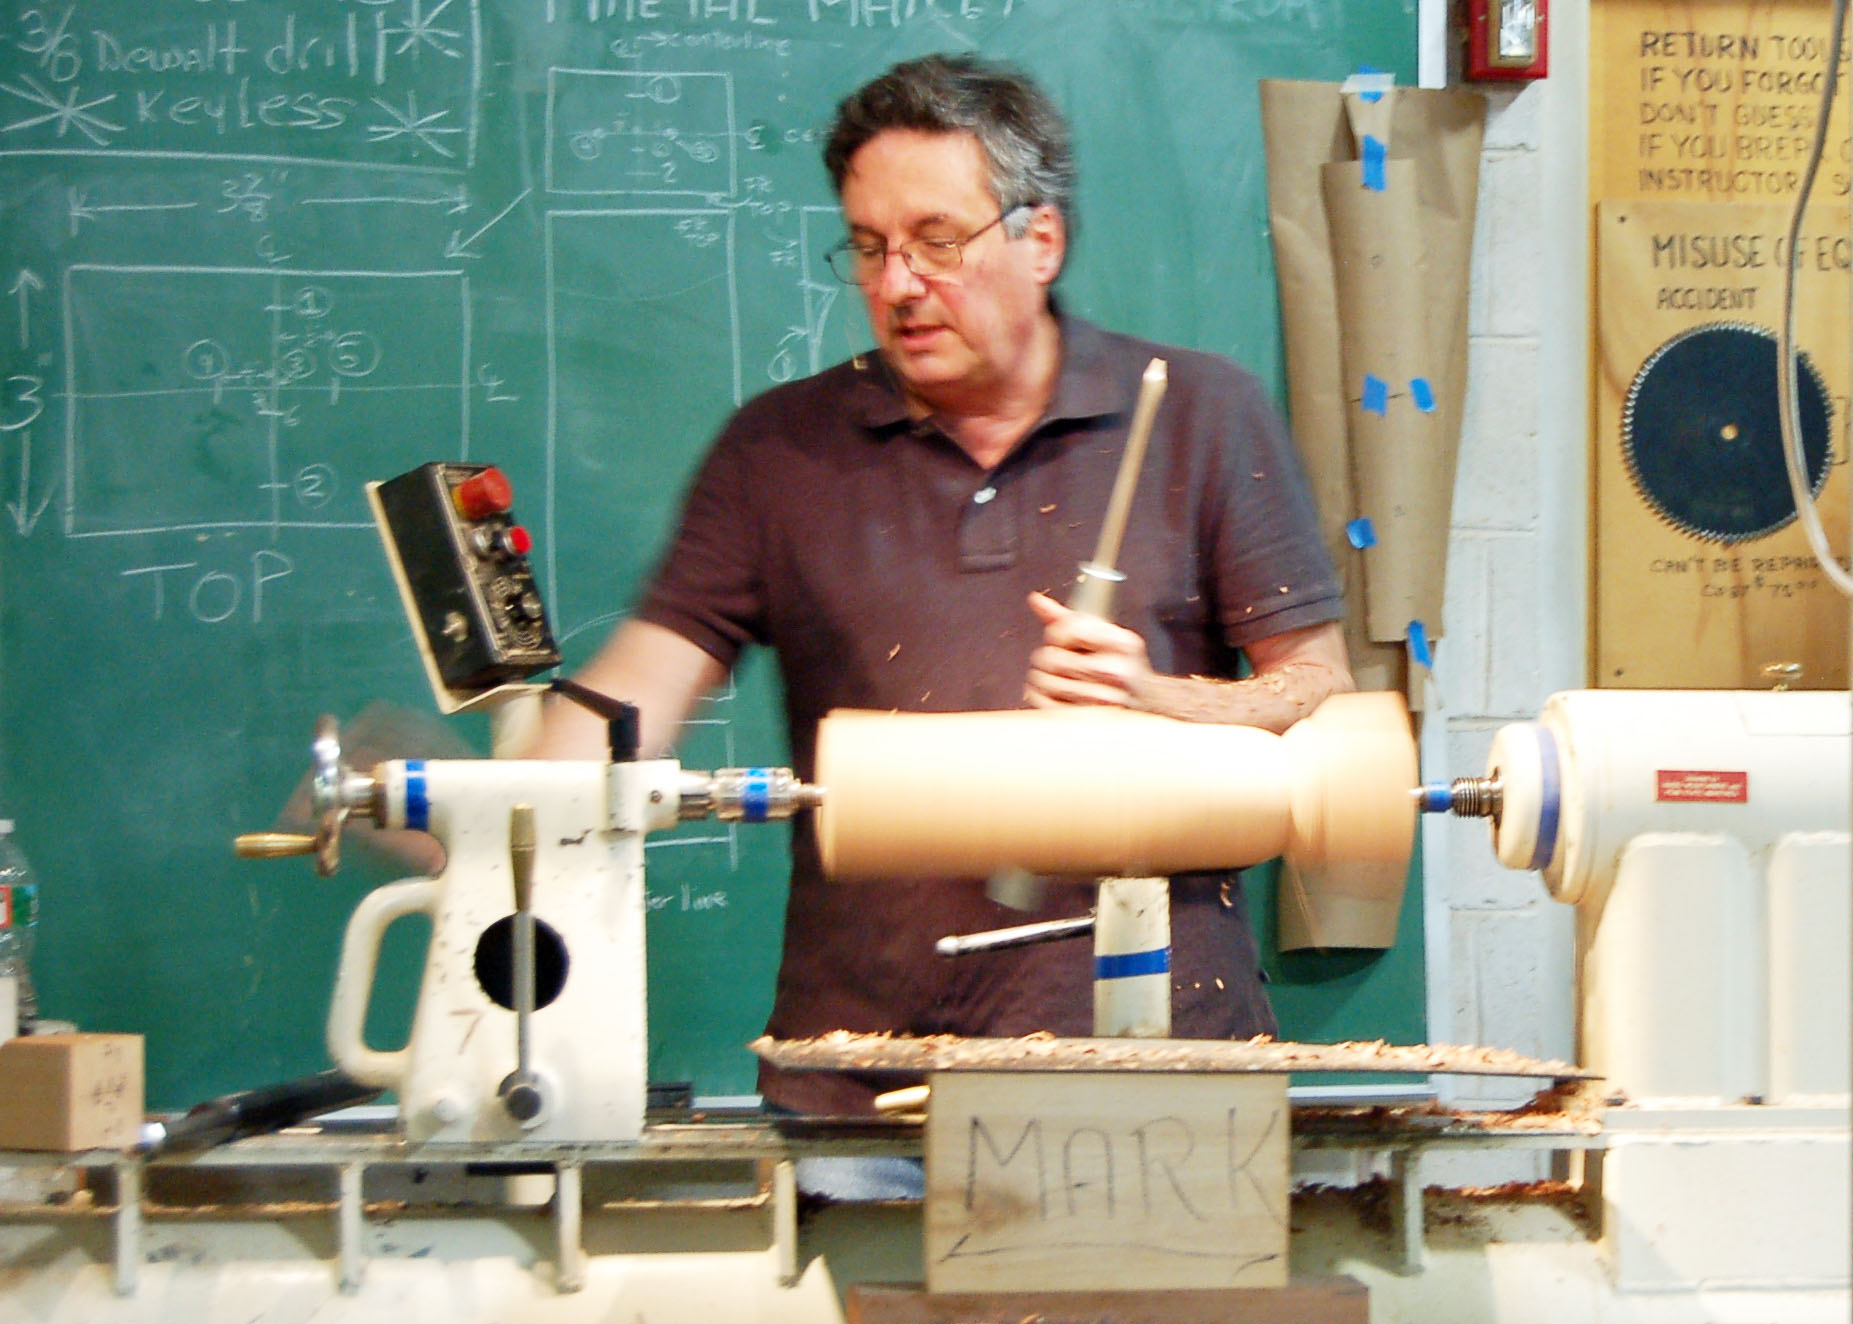 Mark forms the front of the figure- the belly and legs. Note the locations of the various axes on the blackboard.